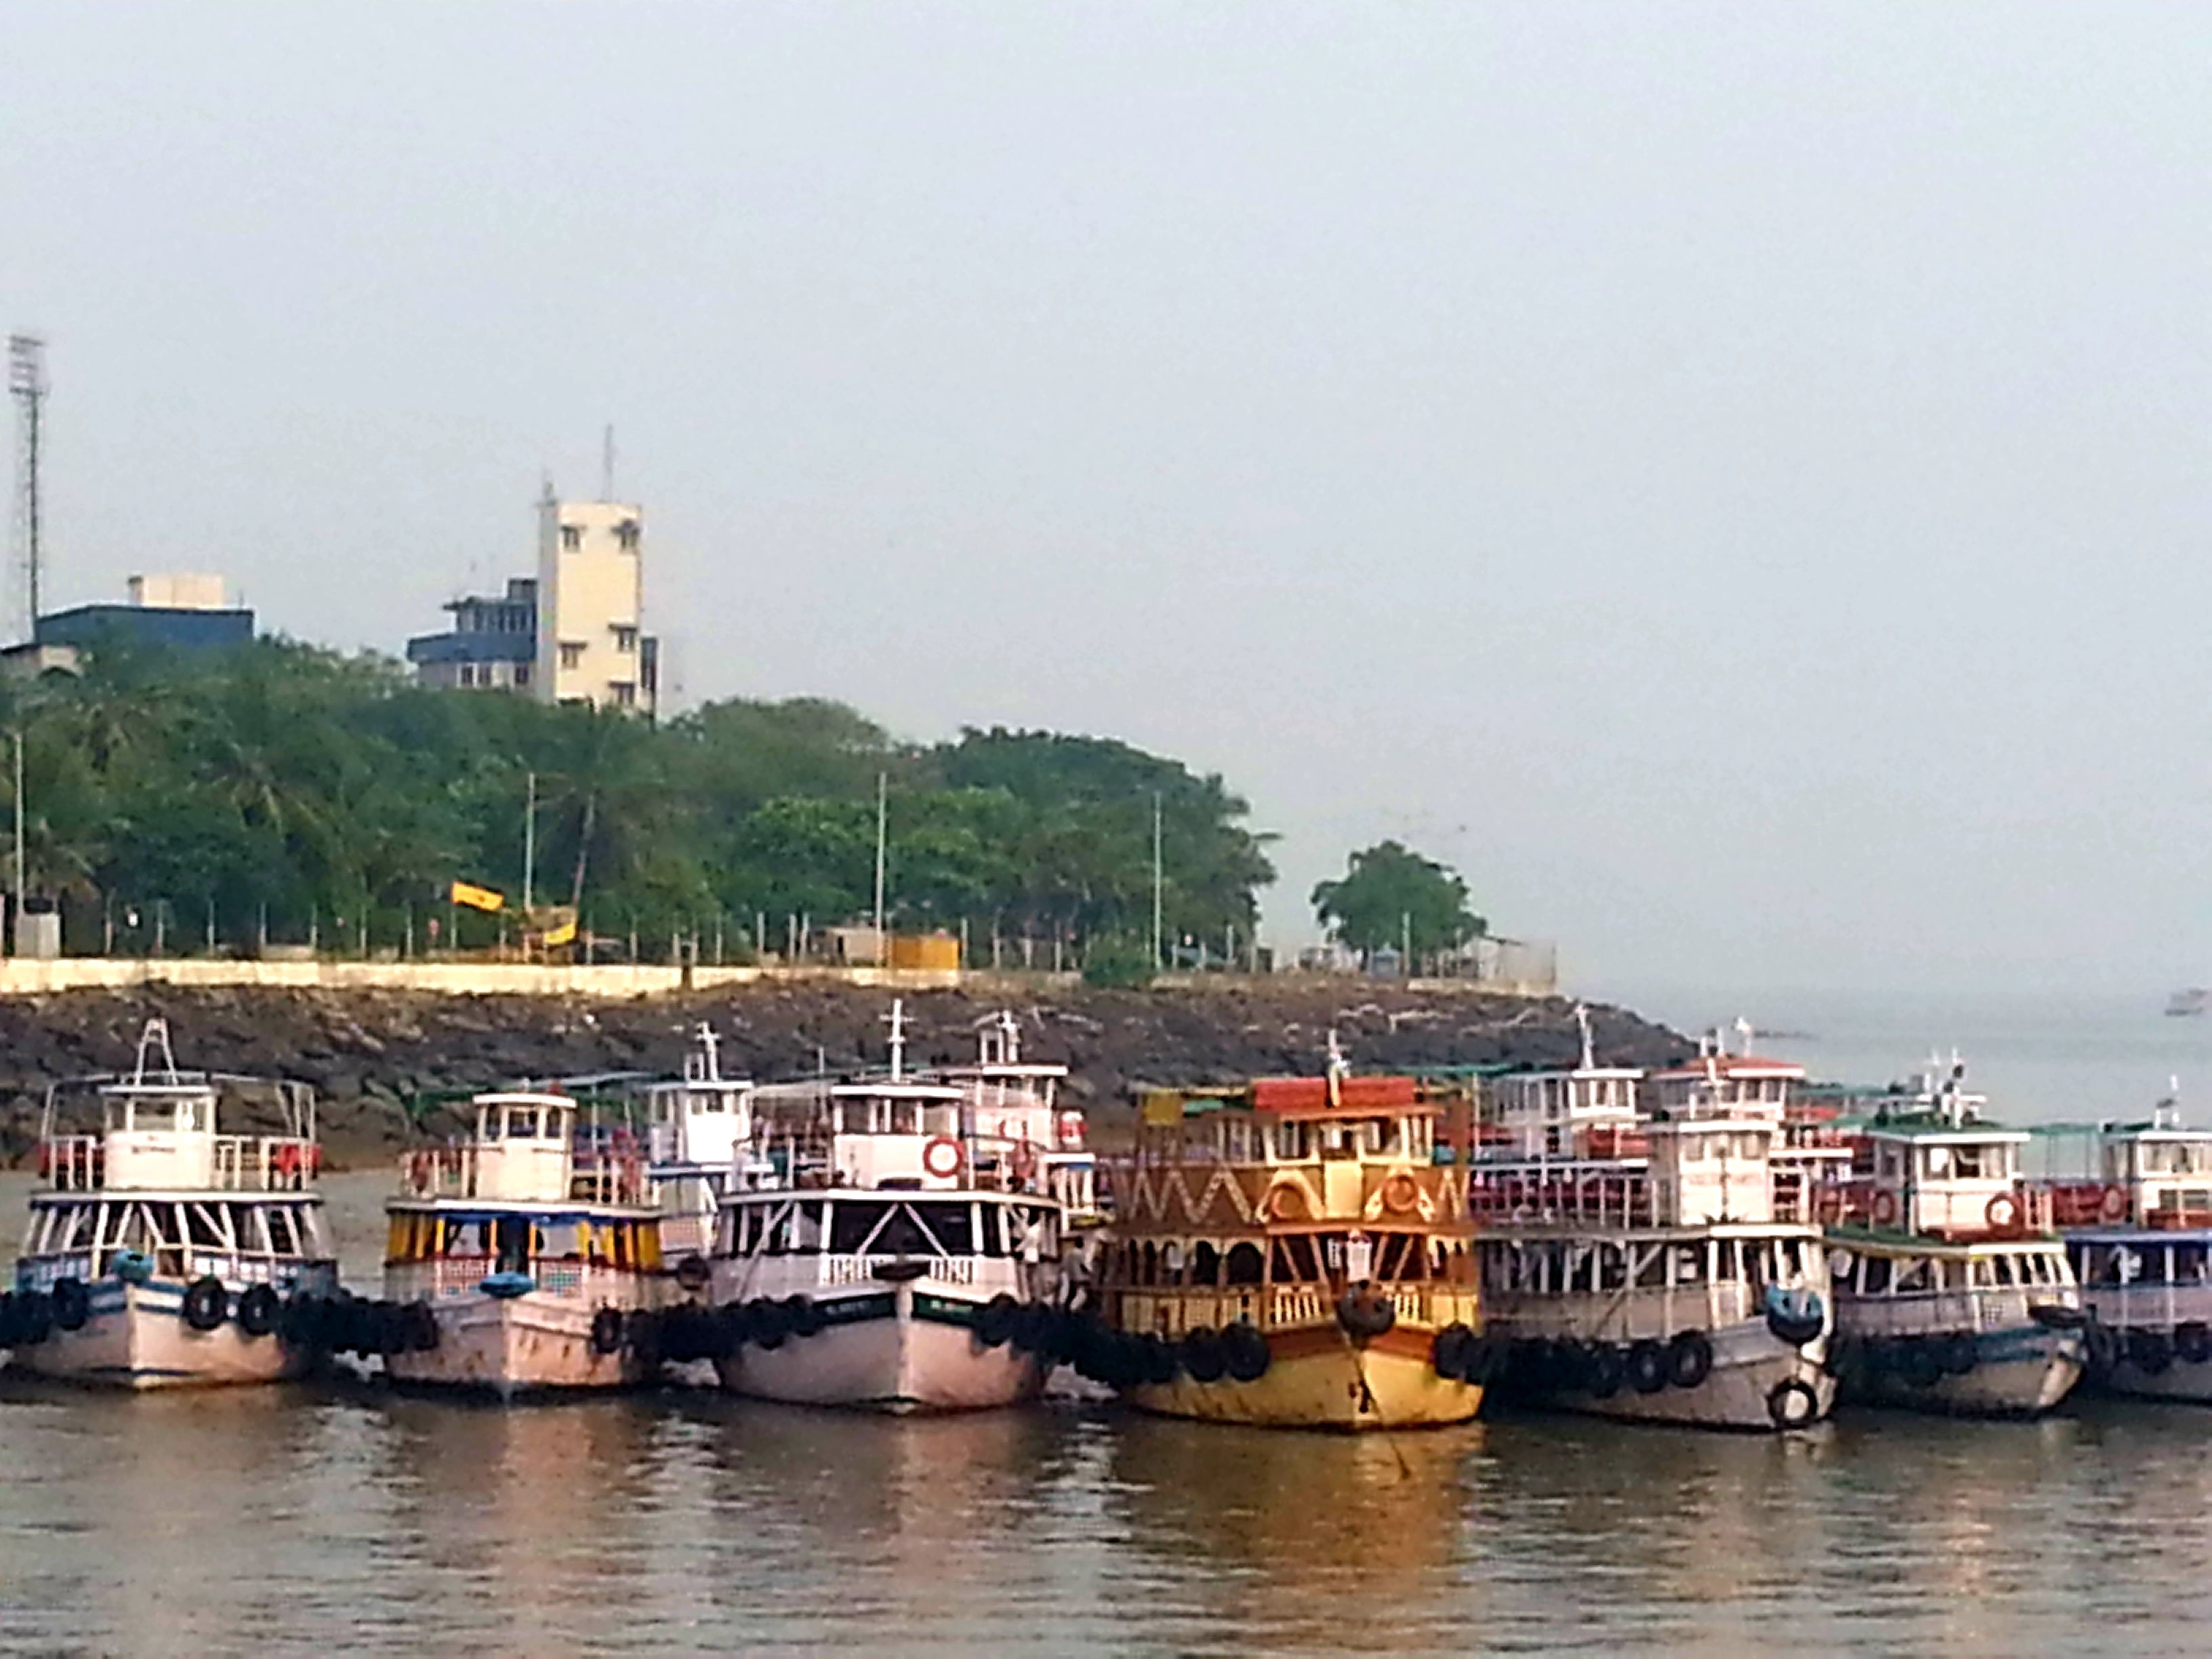 Australian Cricket Tours - Boats Lined Up In The Harbour At The Gateway To India To Take Visitors To Cave Temples At Elephanta Island | Mumbai | India